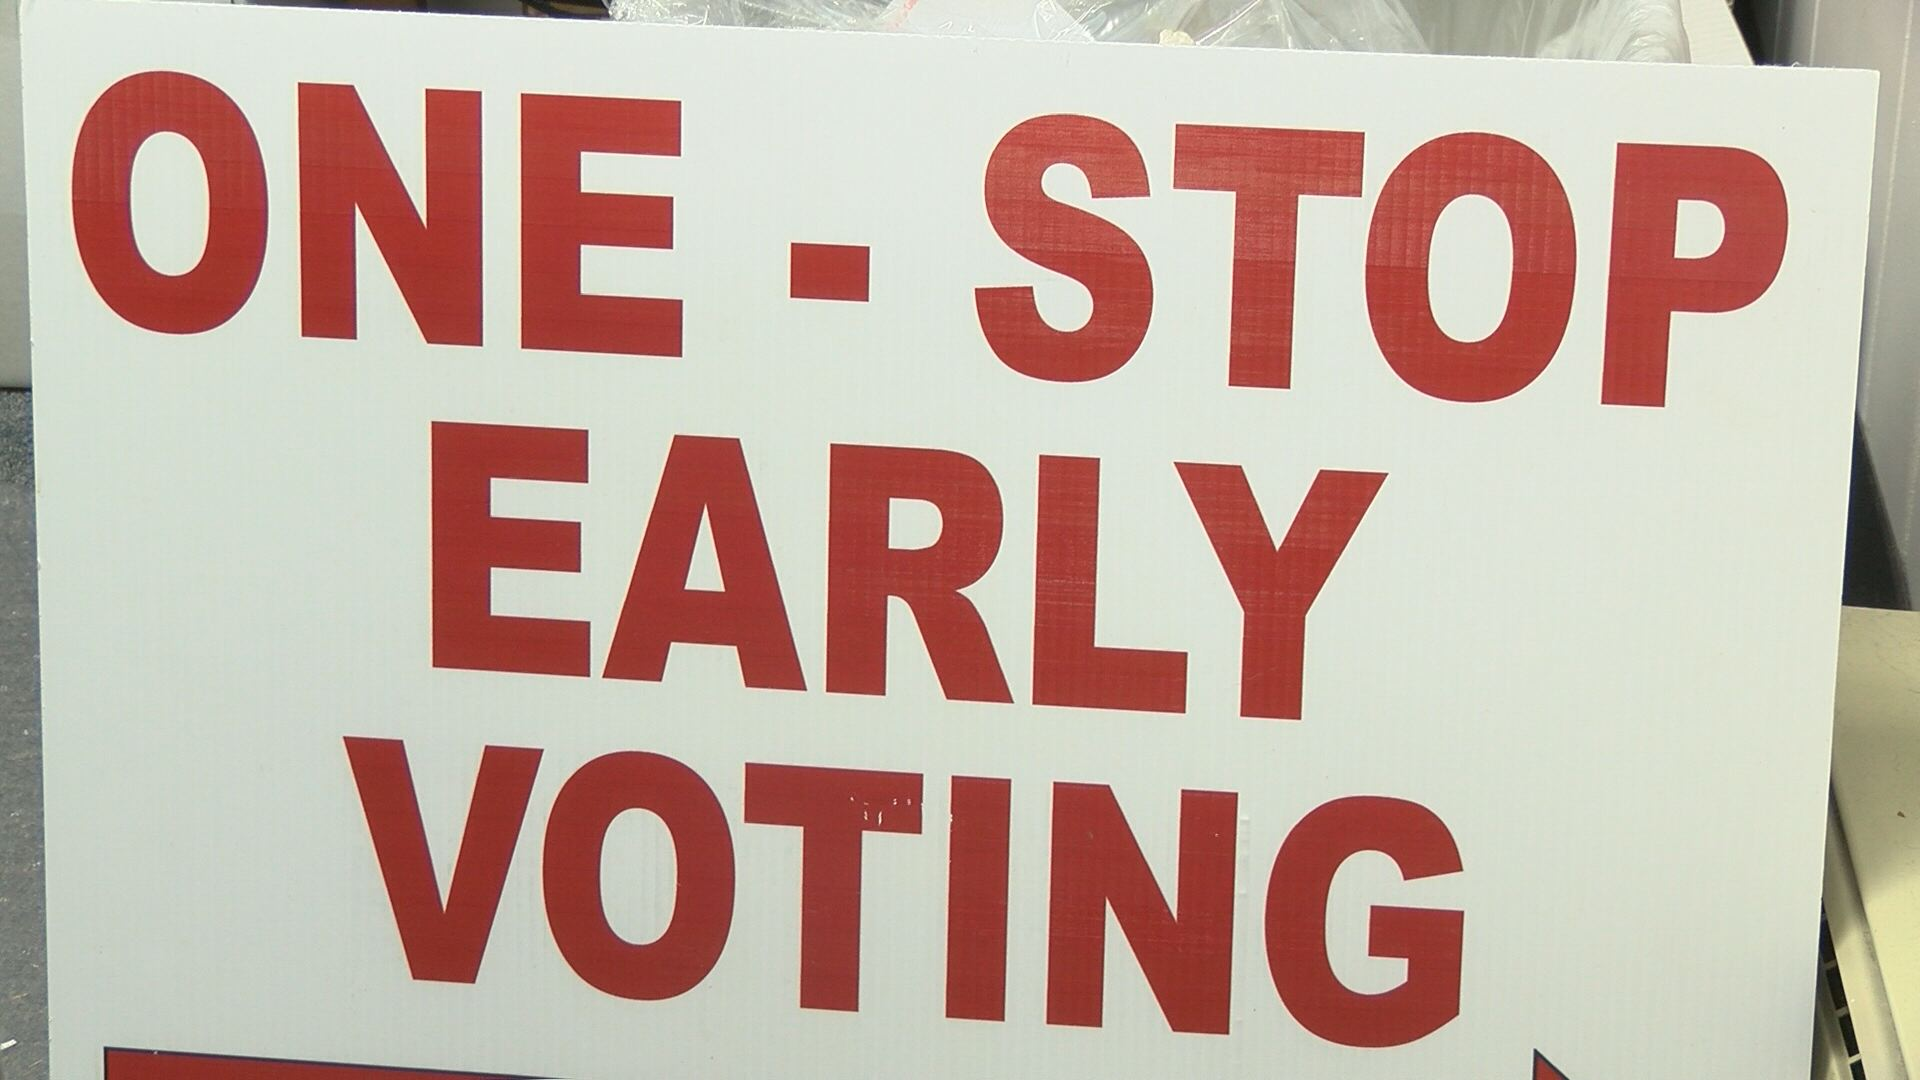 One Stop Early Voting Sign